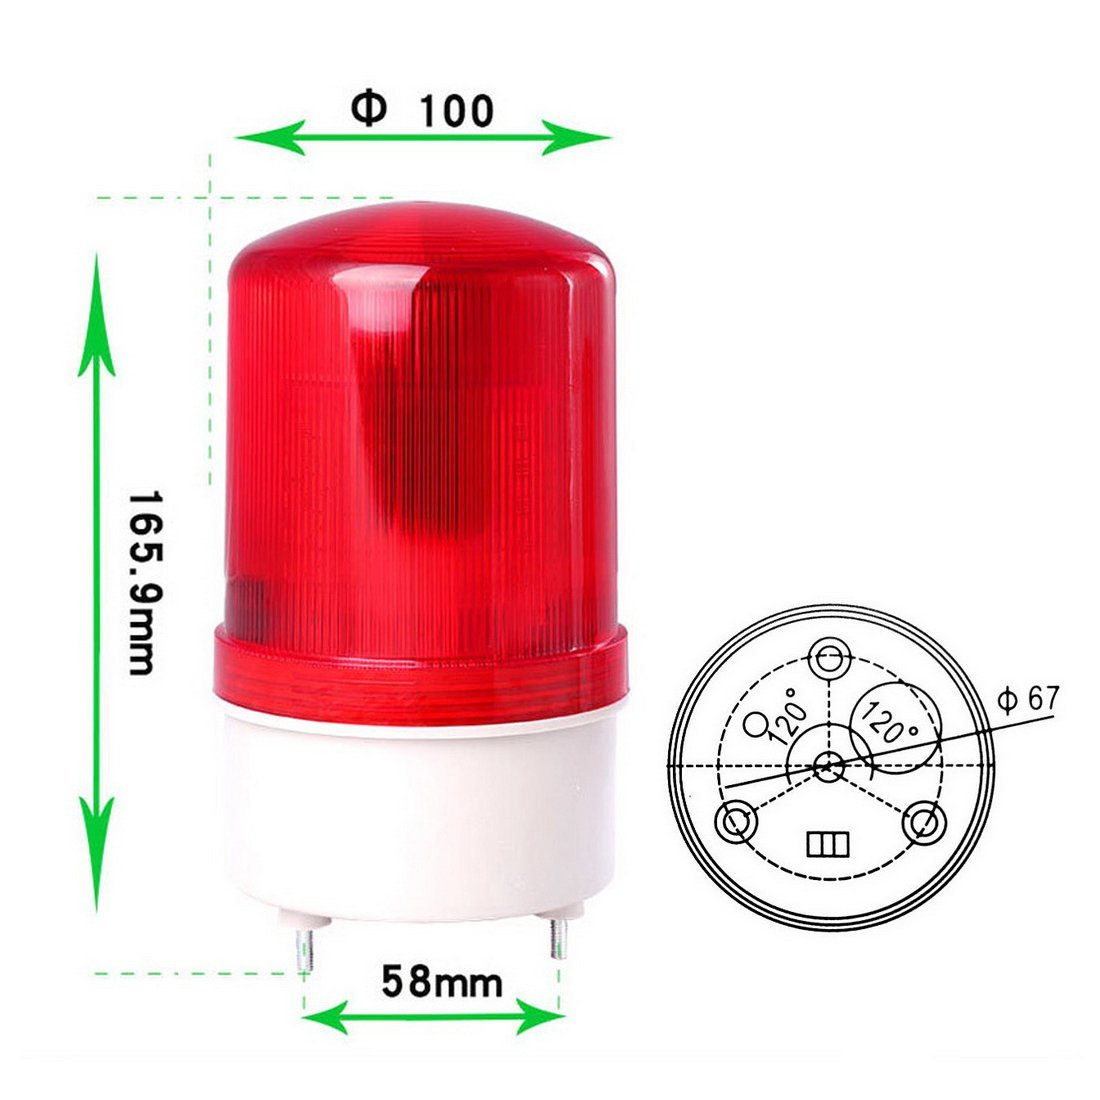 WerFamily 100-110dB Buzzer Red 20 LED Warning Light Signal Tower Lamp Industrial AC 110V with Base